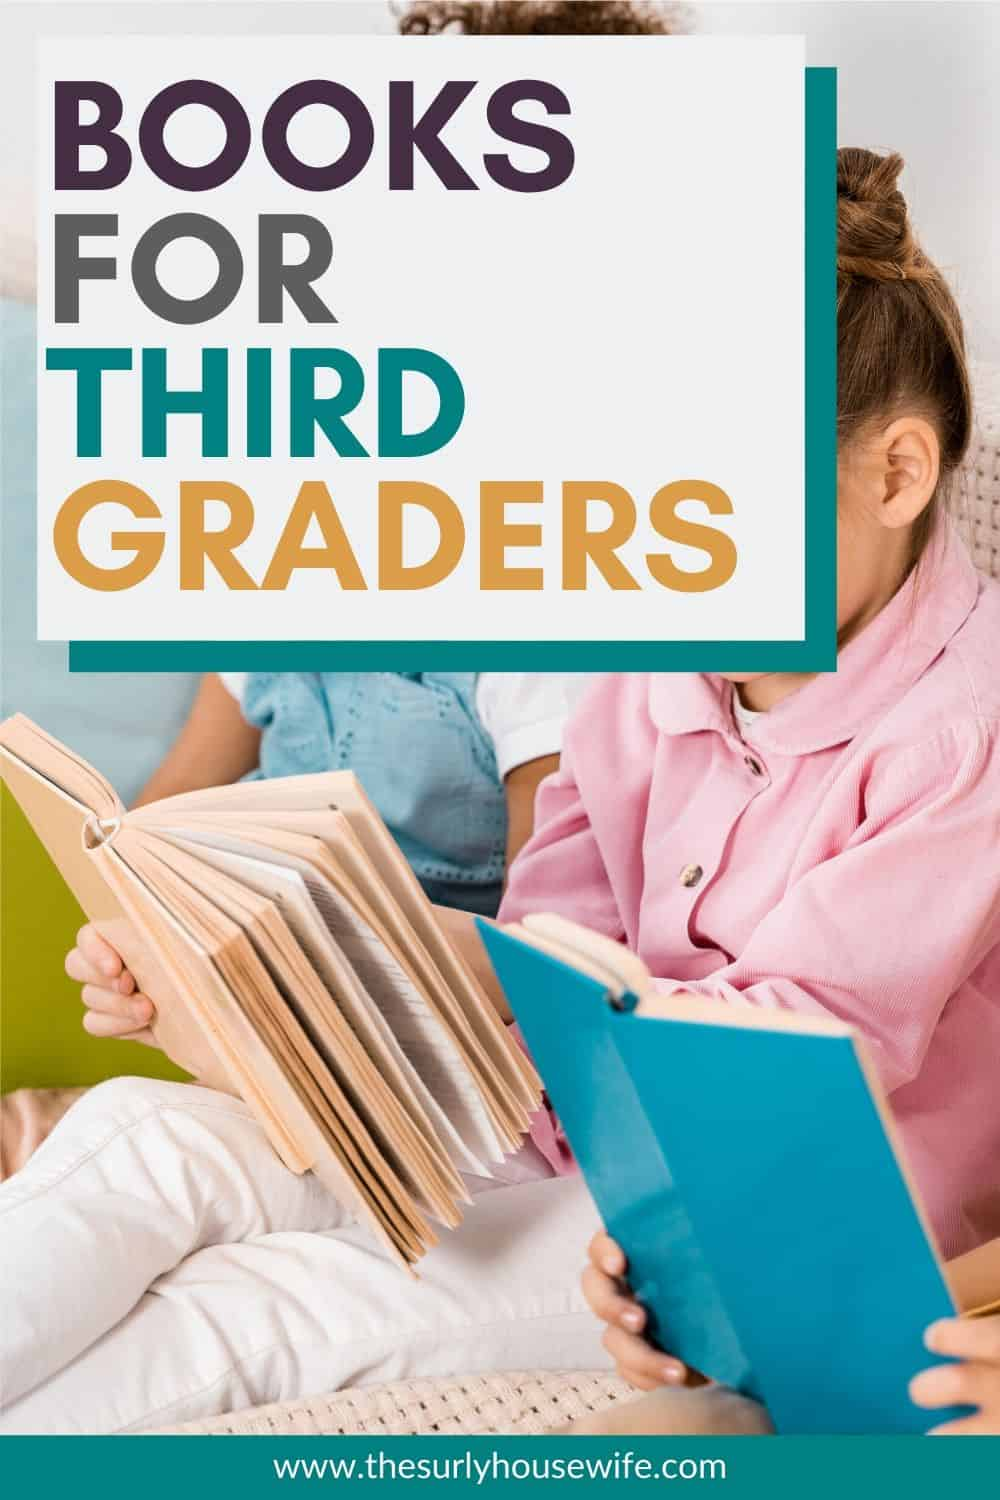 Searching for books for 3rd graders? If you are looking for some of the best third grade books for boys OR girls, click here! A list of must-read books and chapter book recommendations for third graders or 9 year olds.